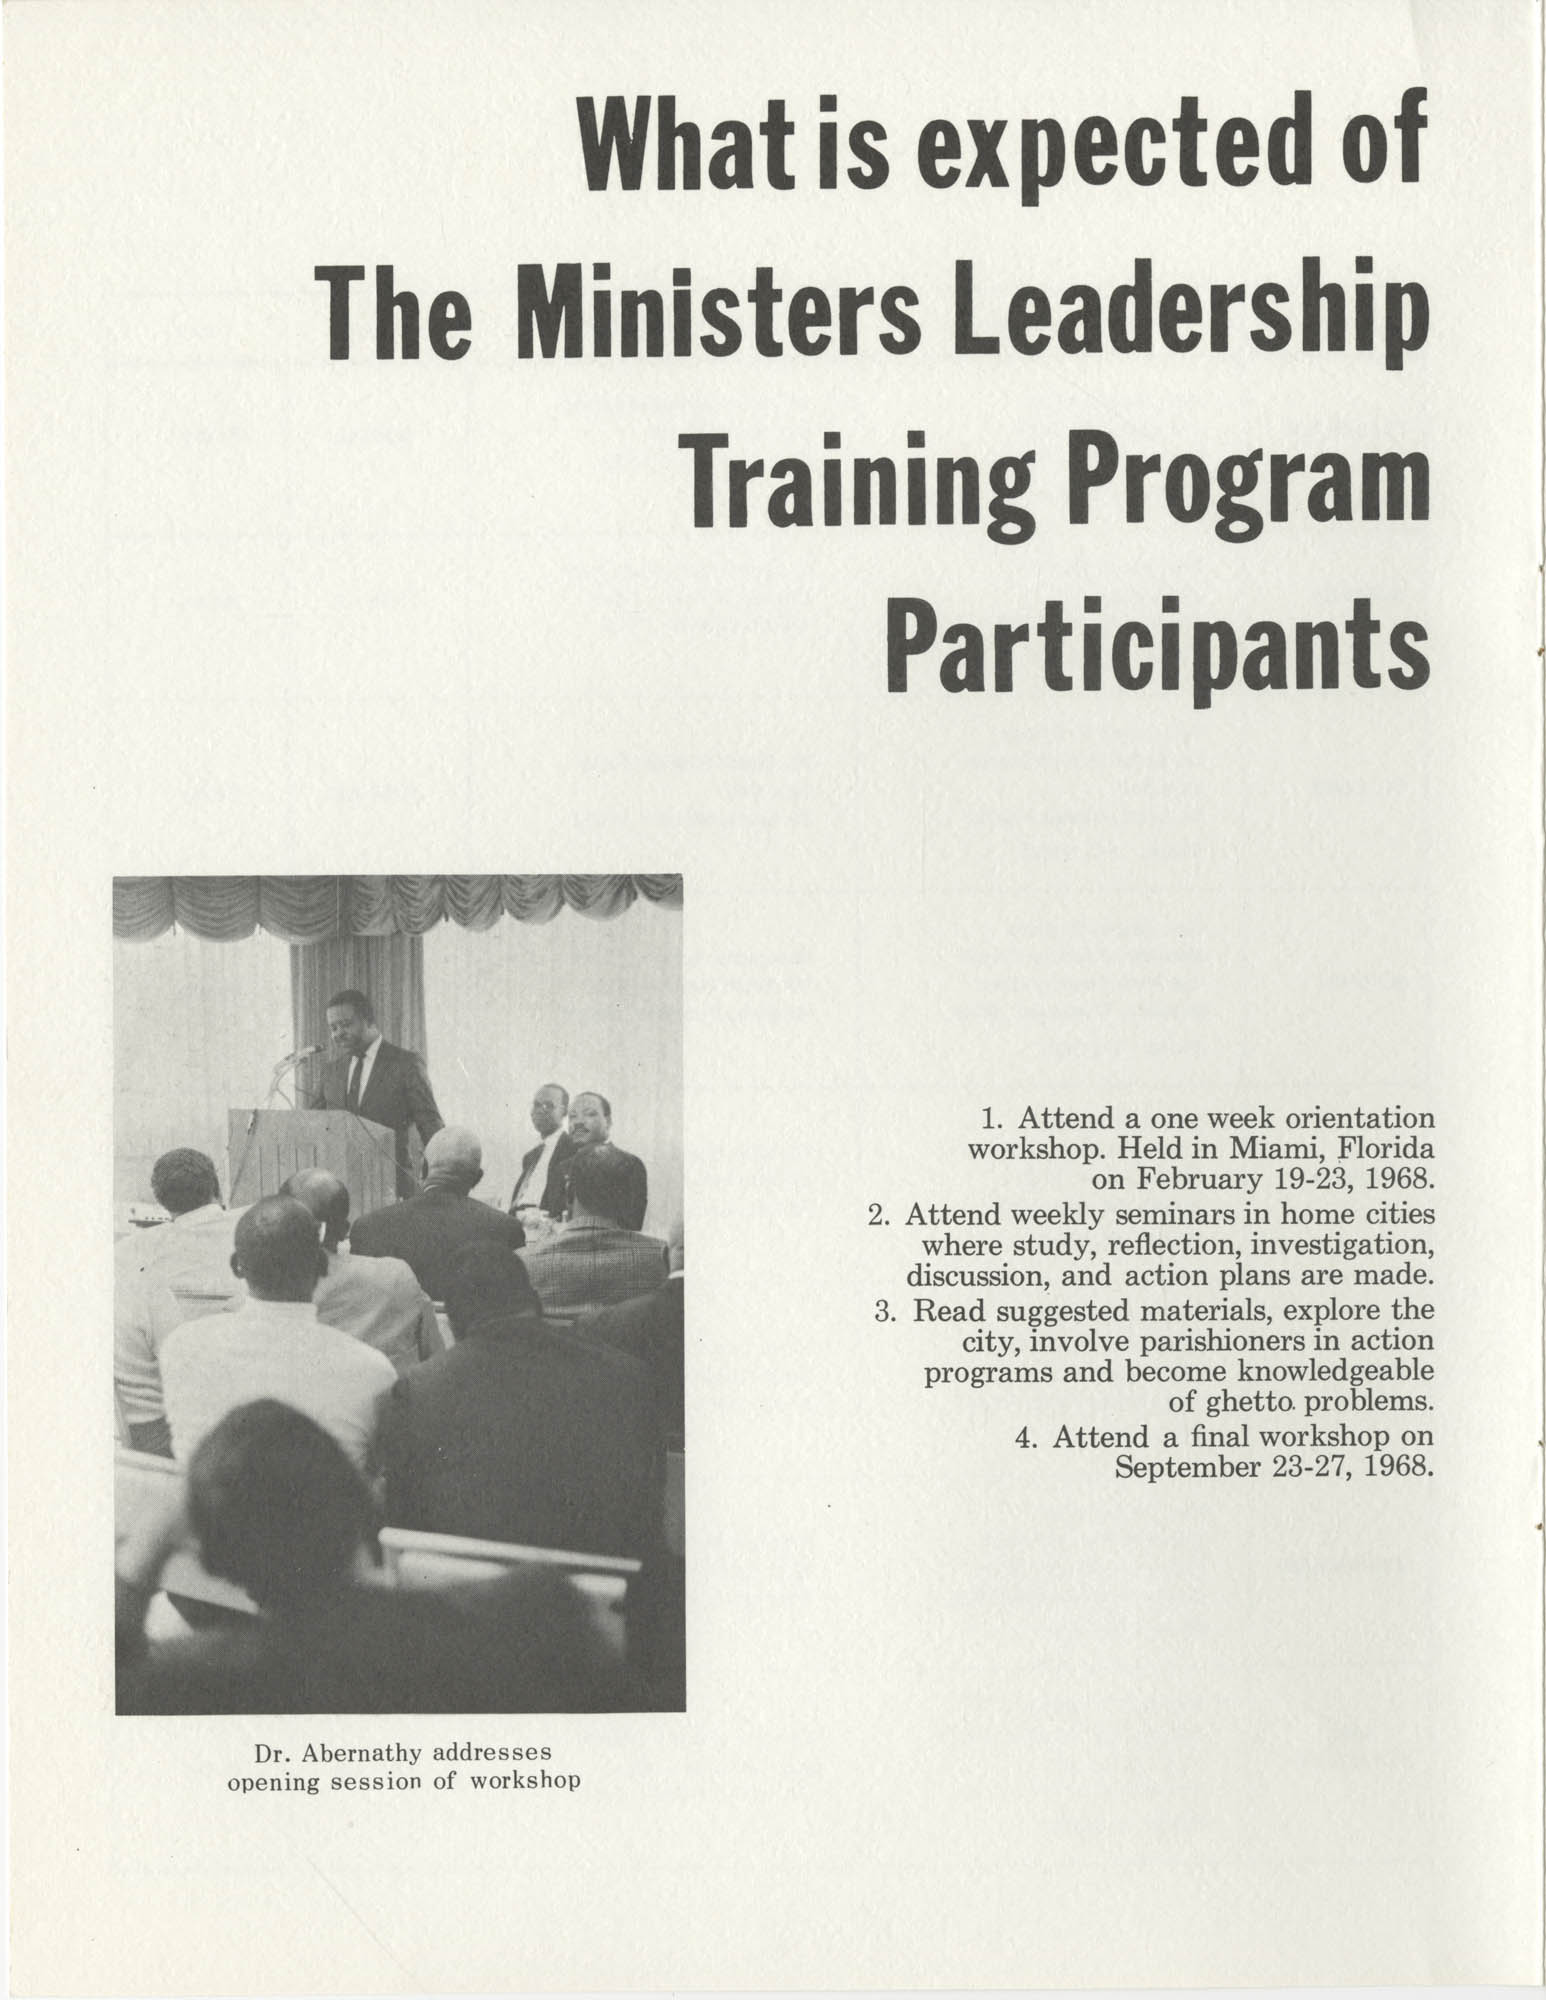 Ministers Leadership Training Program, Page 7